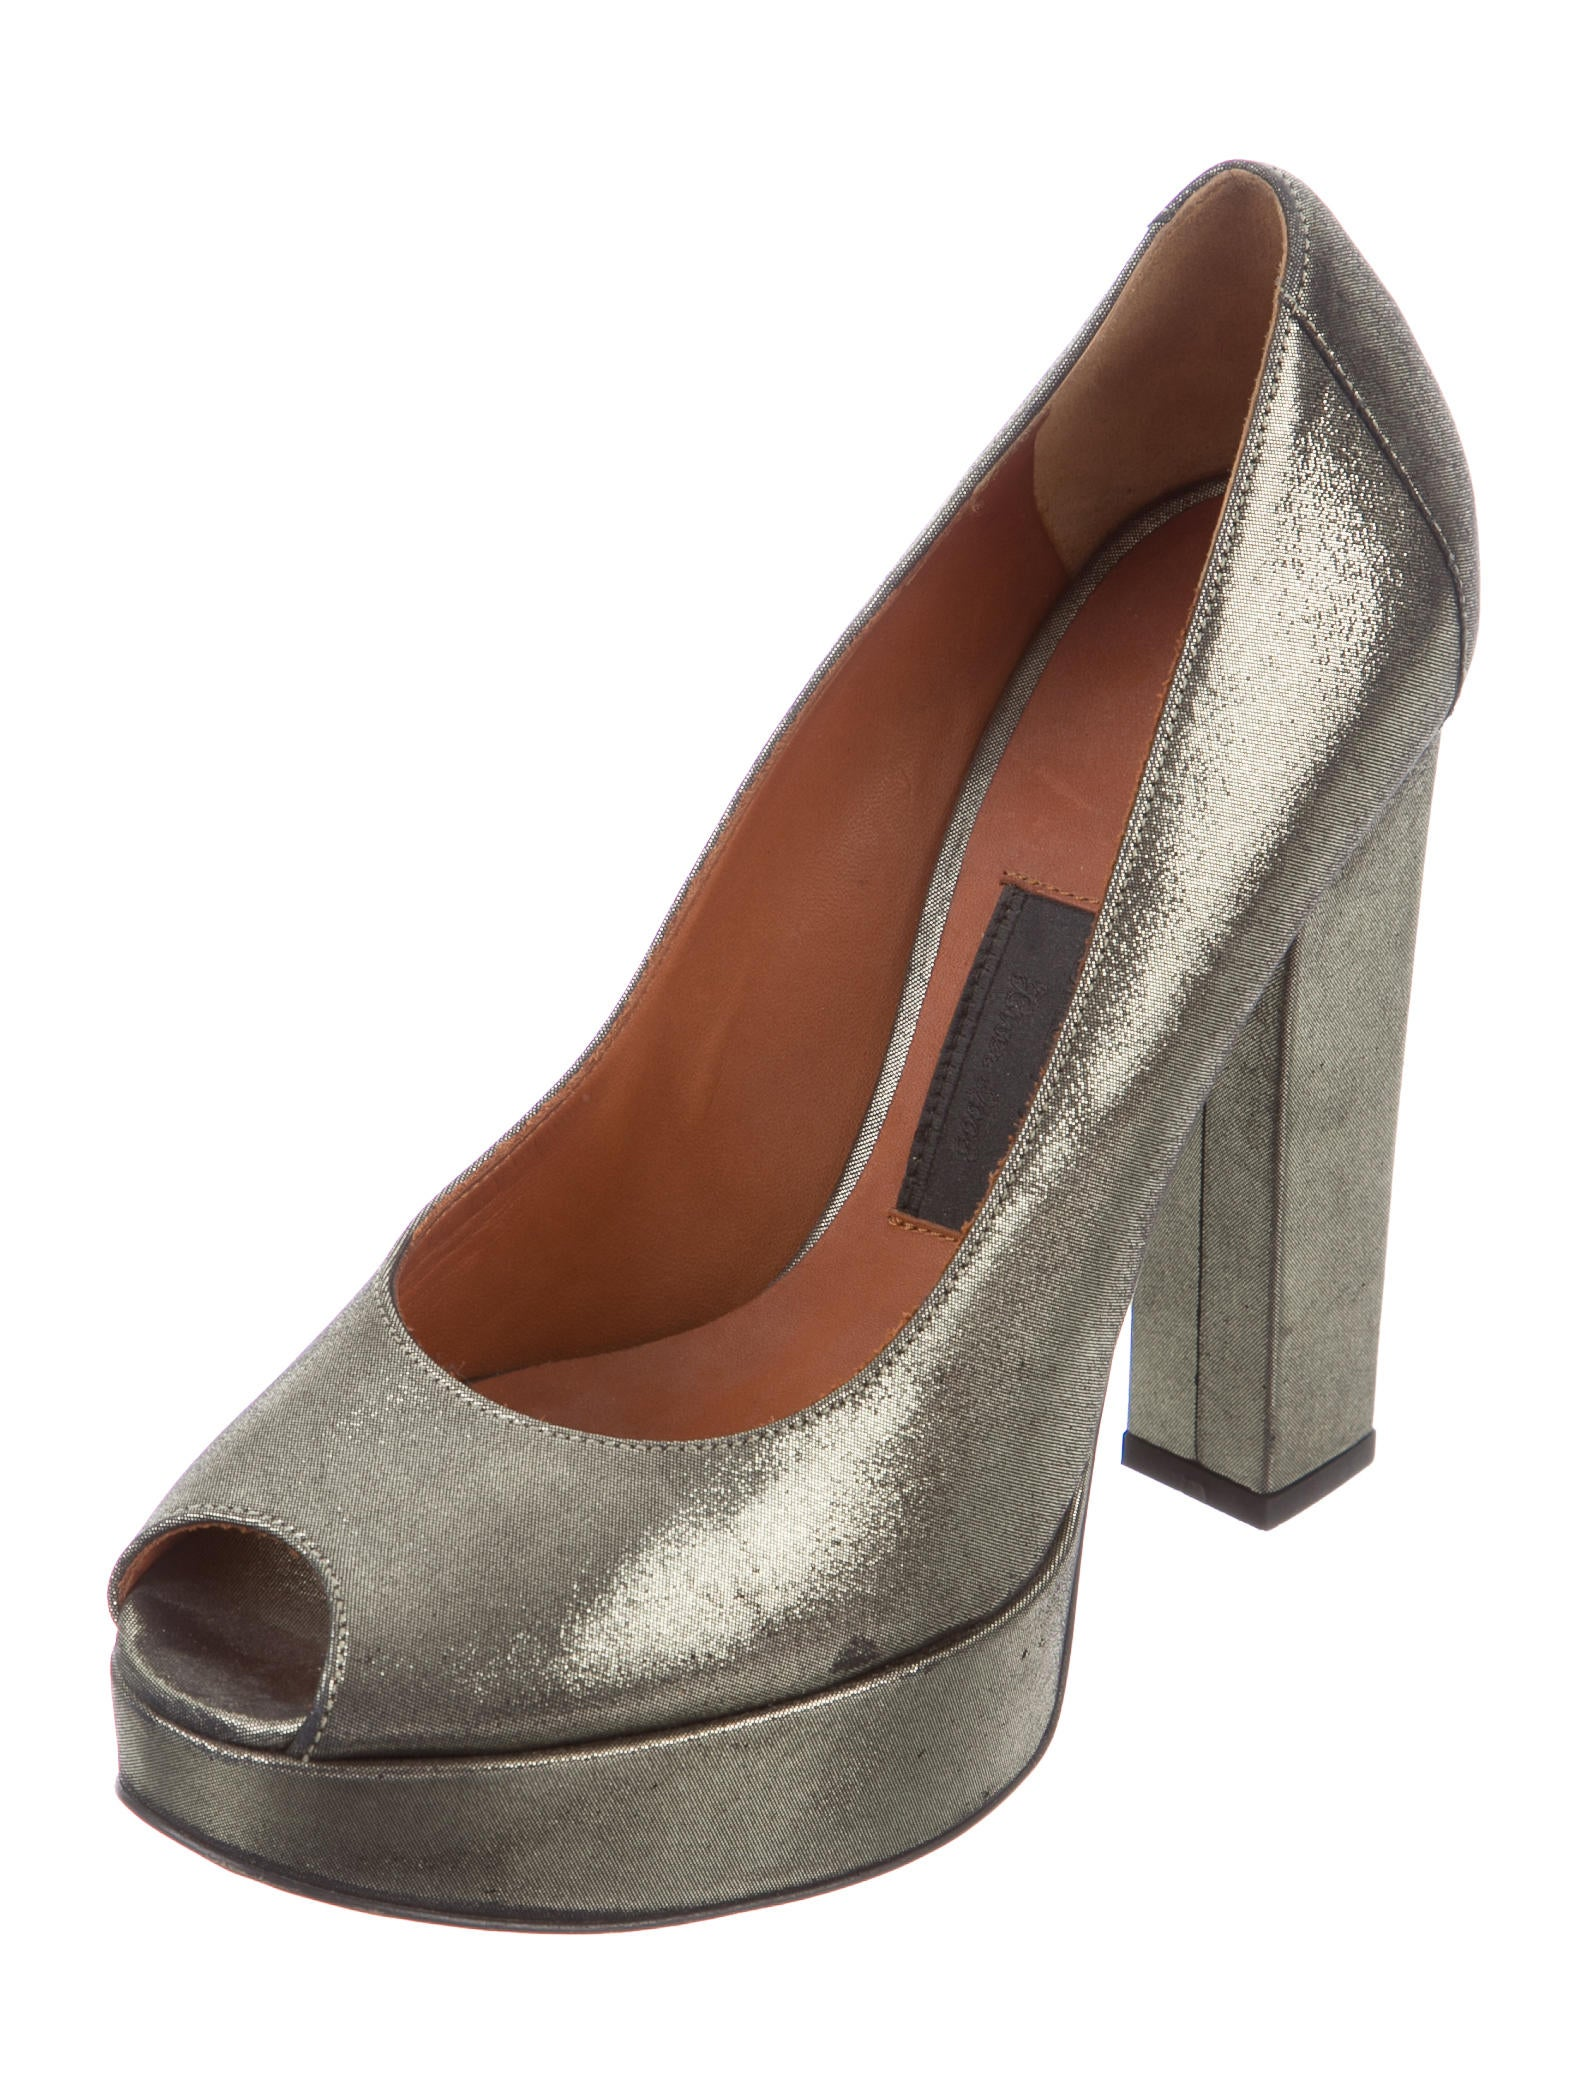 lanvin metallic platform pumps shoes lan54820 the